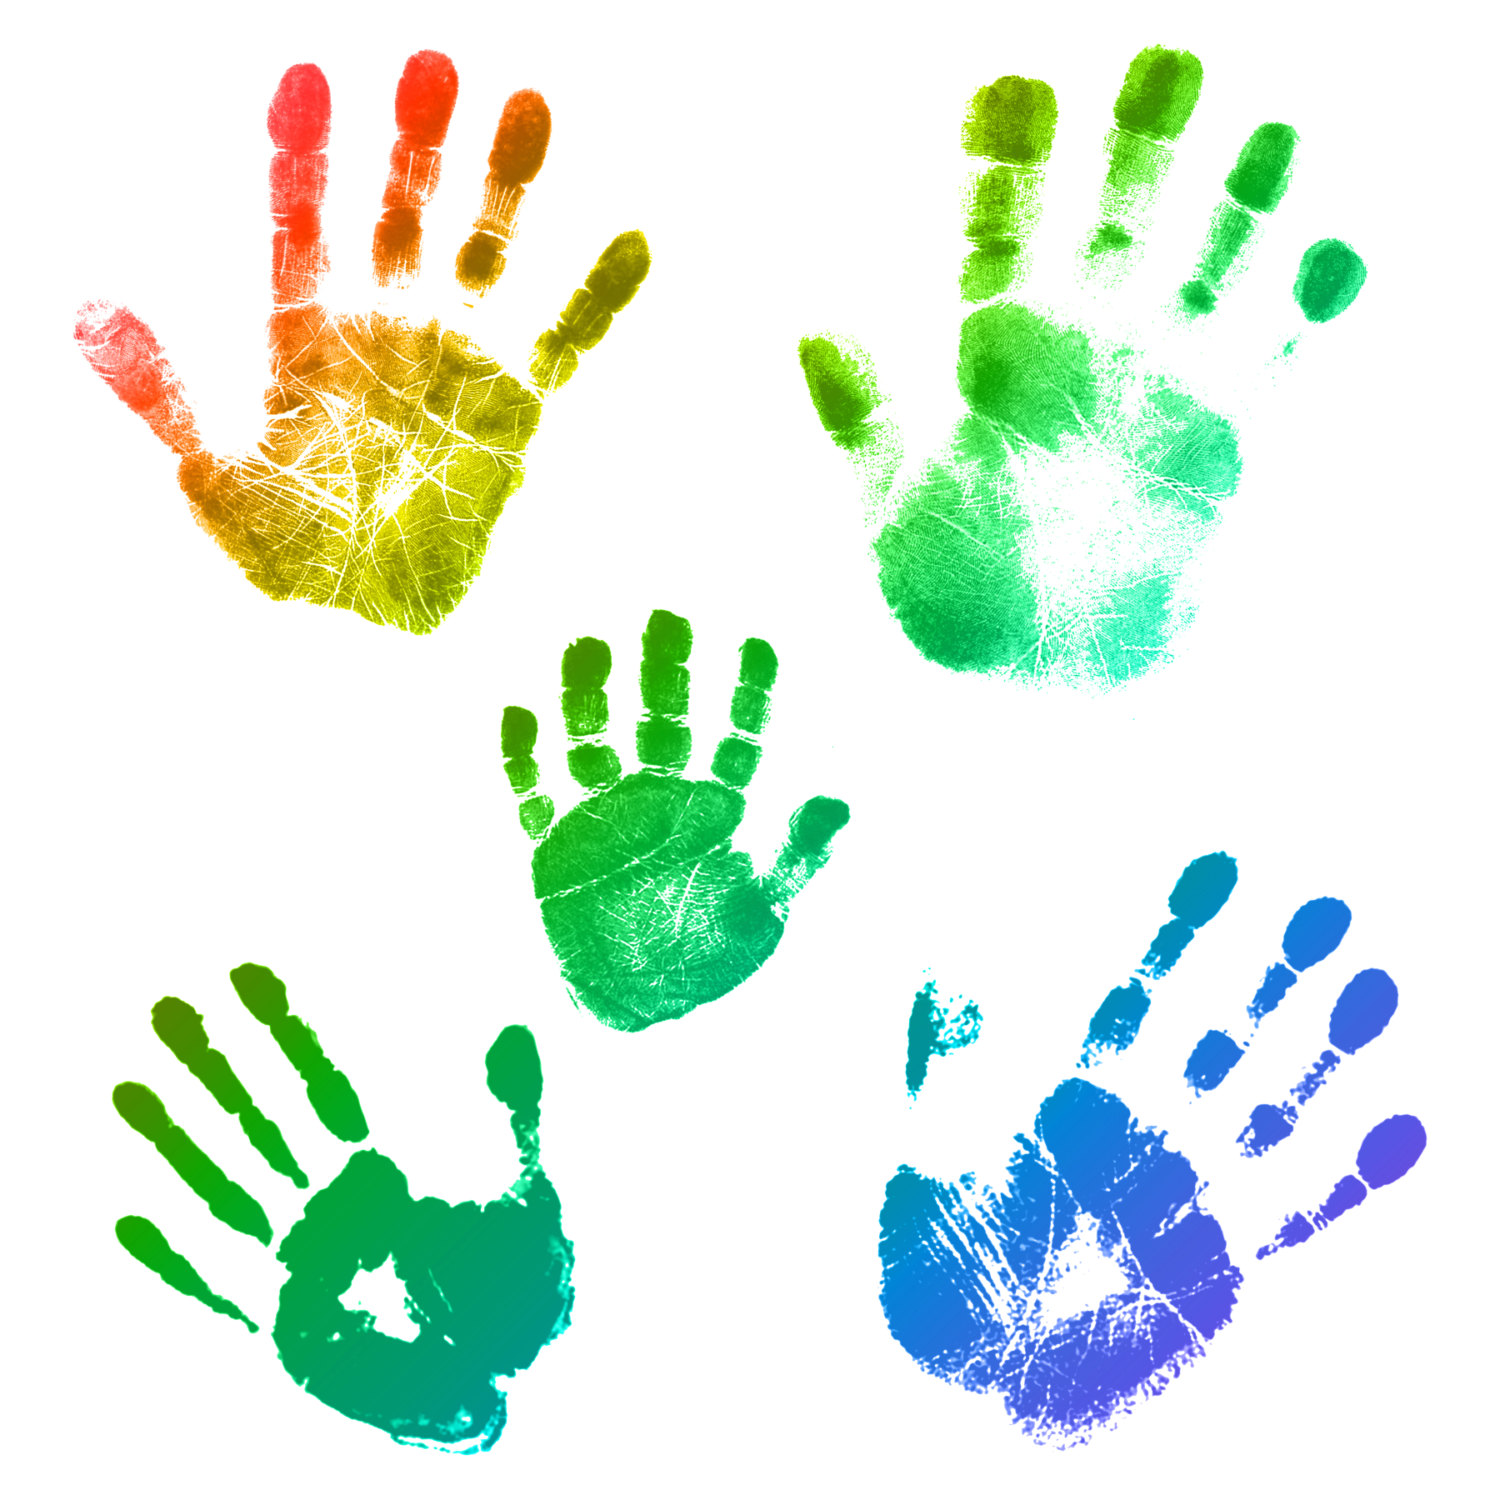 Handprint clipart together  Commercial Brushes Instant Photoshop